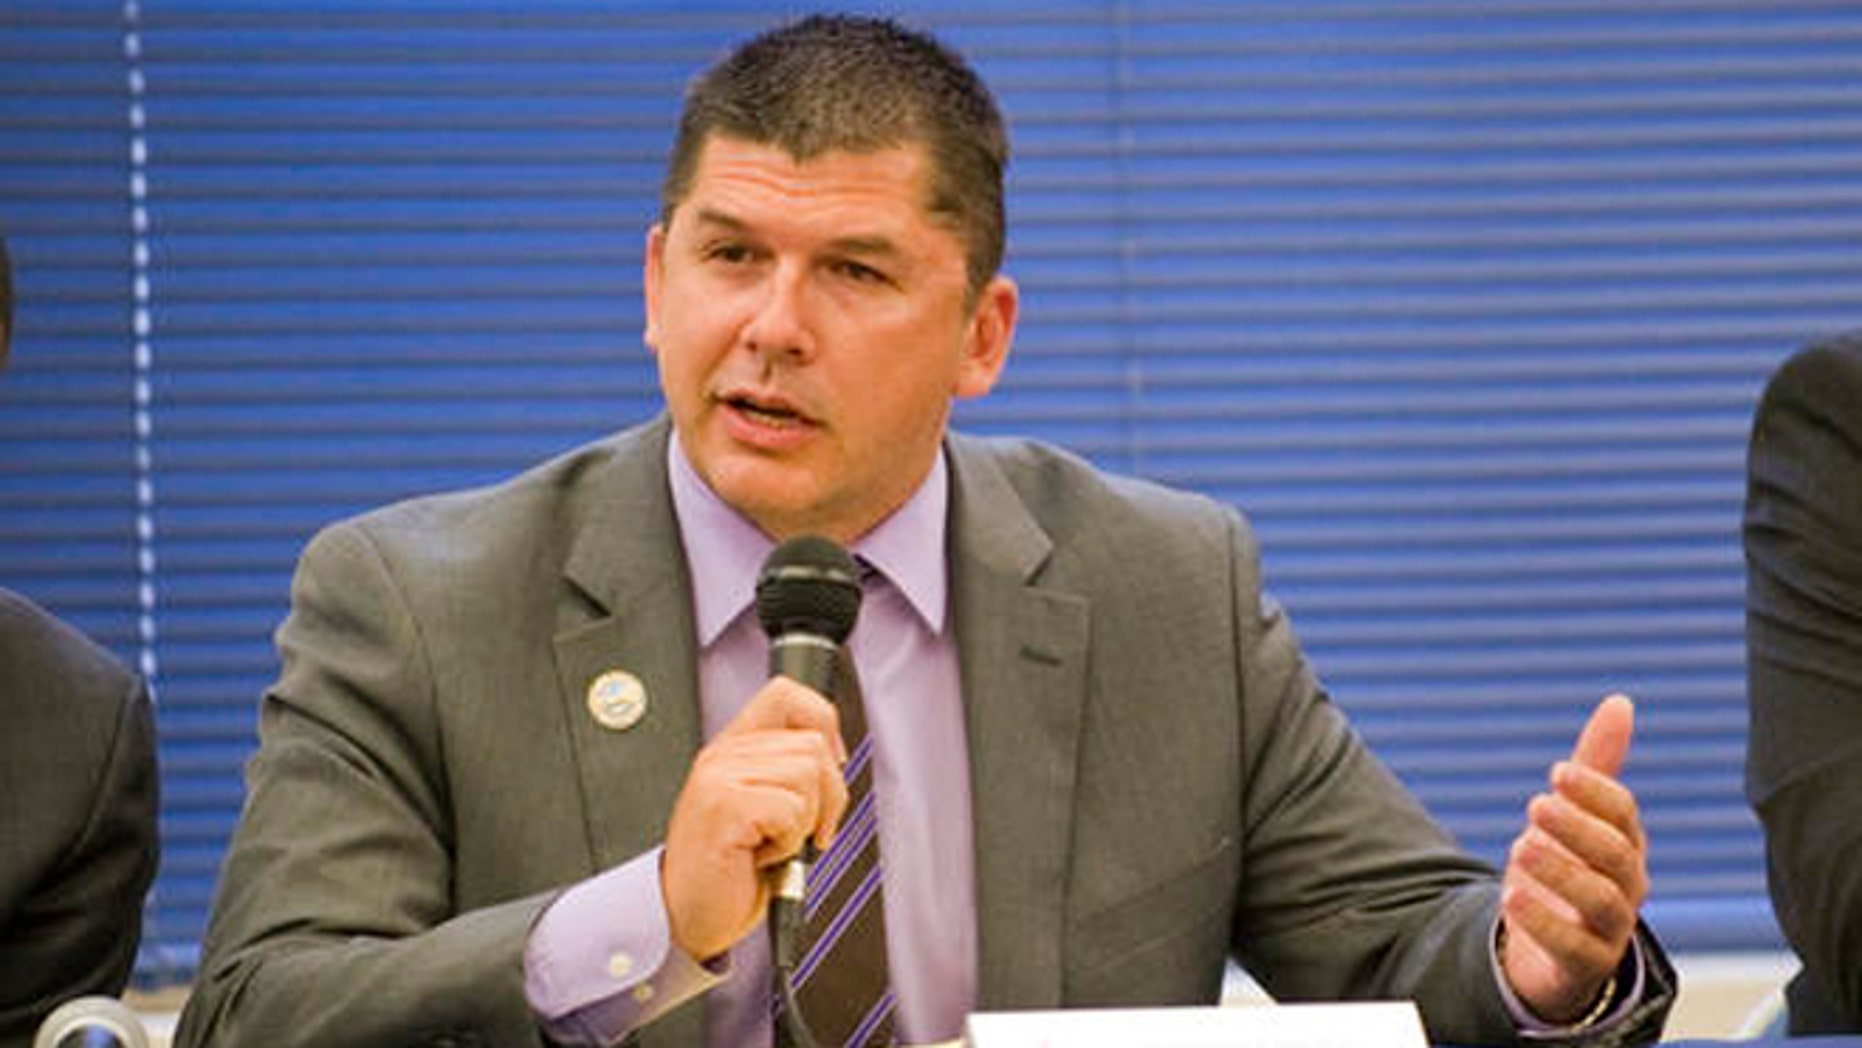 In this April 21, 2016 photo, Stockton Mayor Anthony Silva participates in a mayoral candidate forum hosted by the National Association for the Advancement of Colored People in Stockton, Calif.